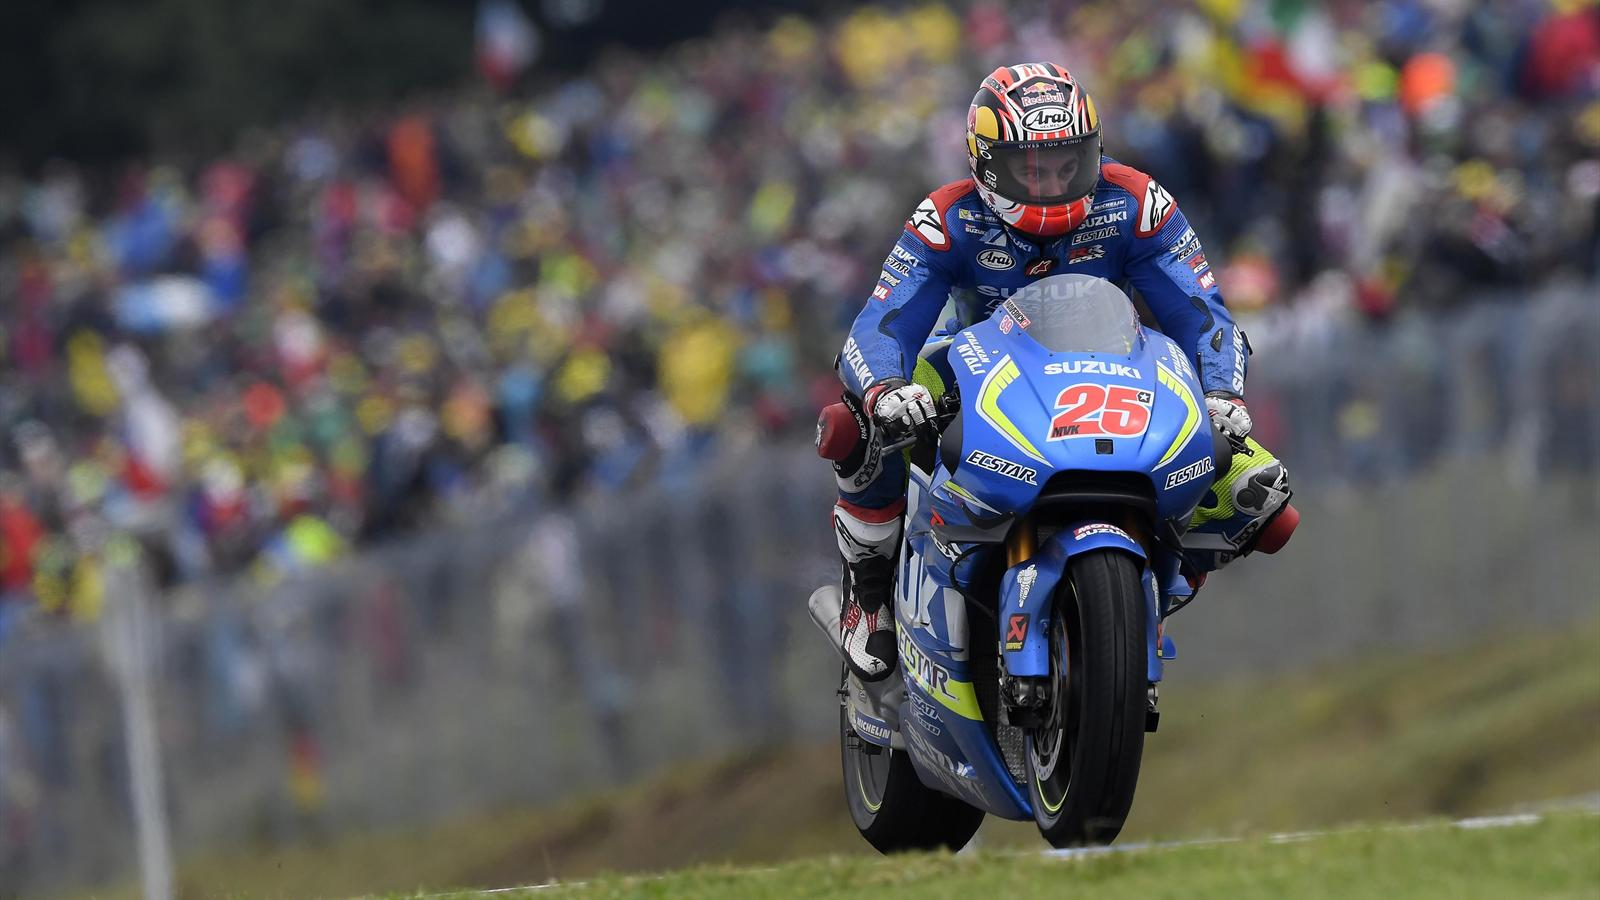 motogp maverick vinales suzuki team devant les autres cadors grand prix de grande bretagne. Black Bedroom Furniture Sets. Home Design Ideas